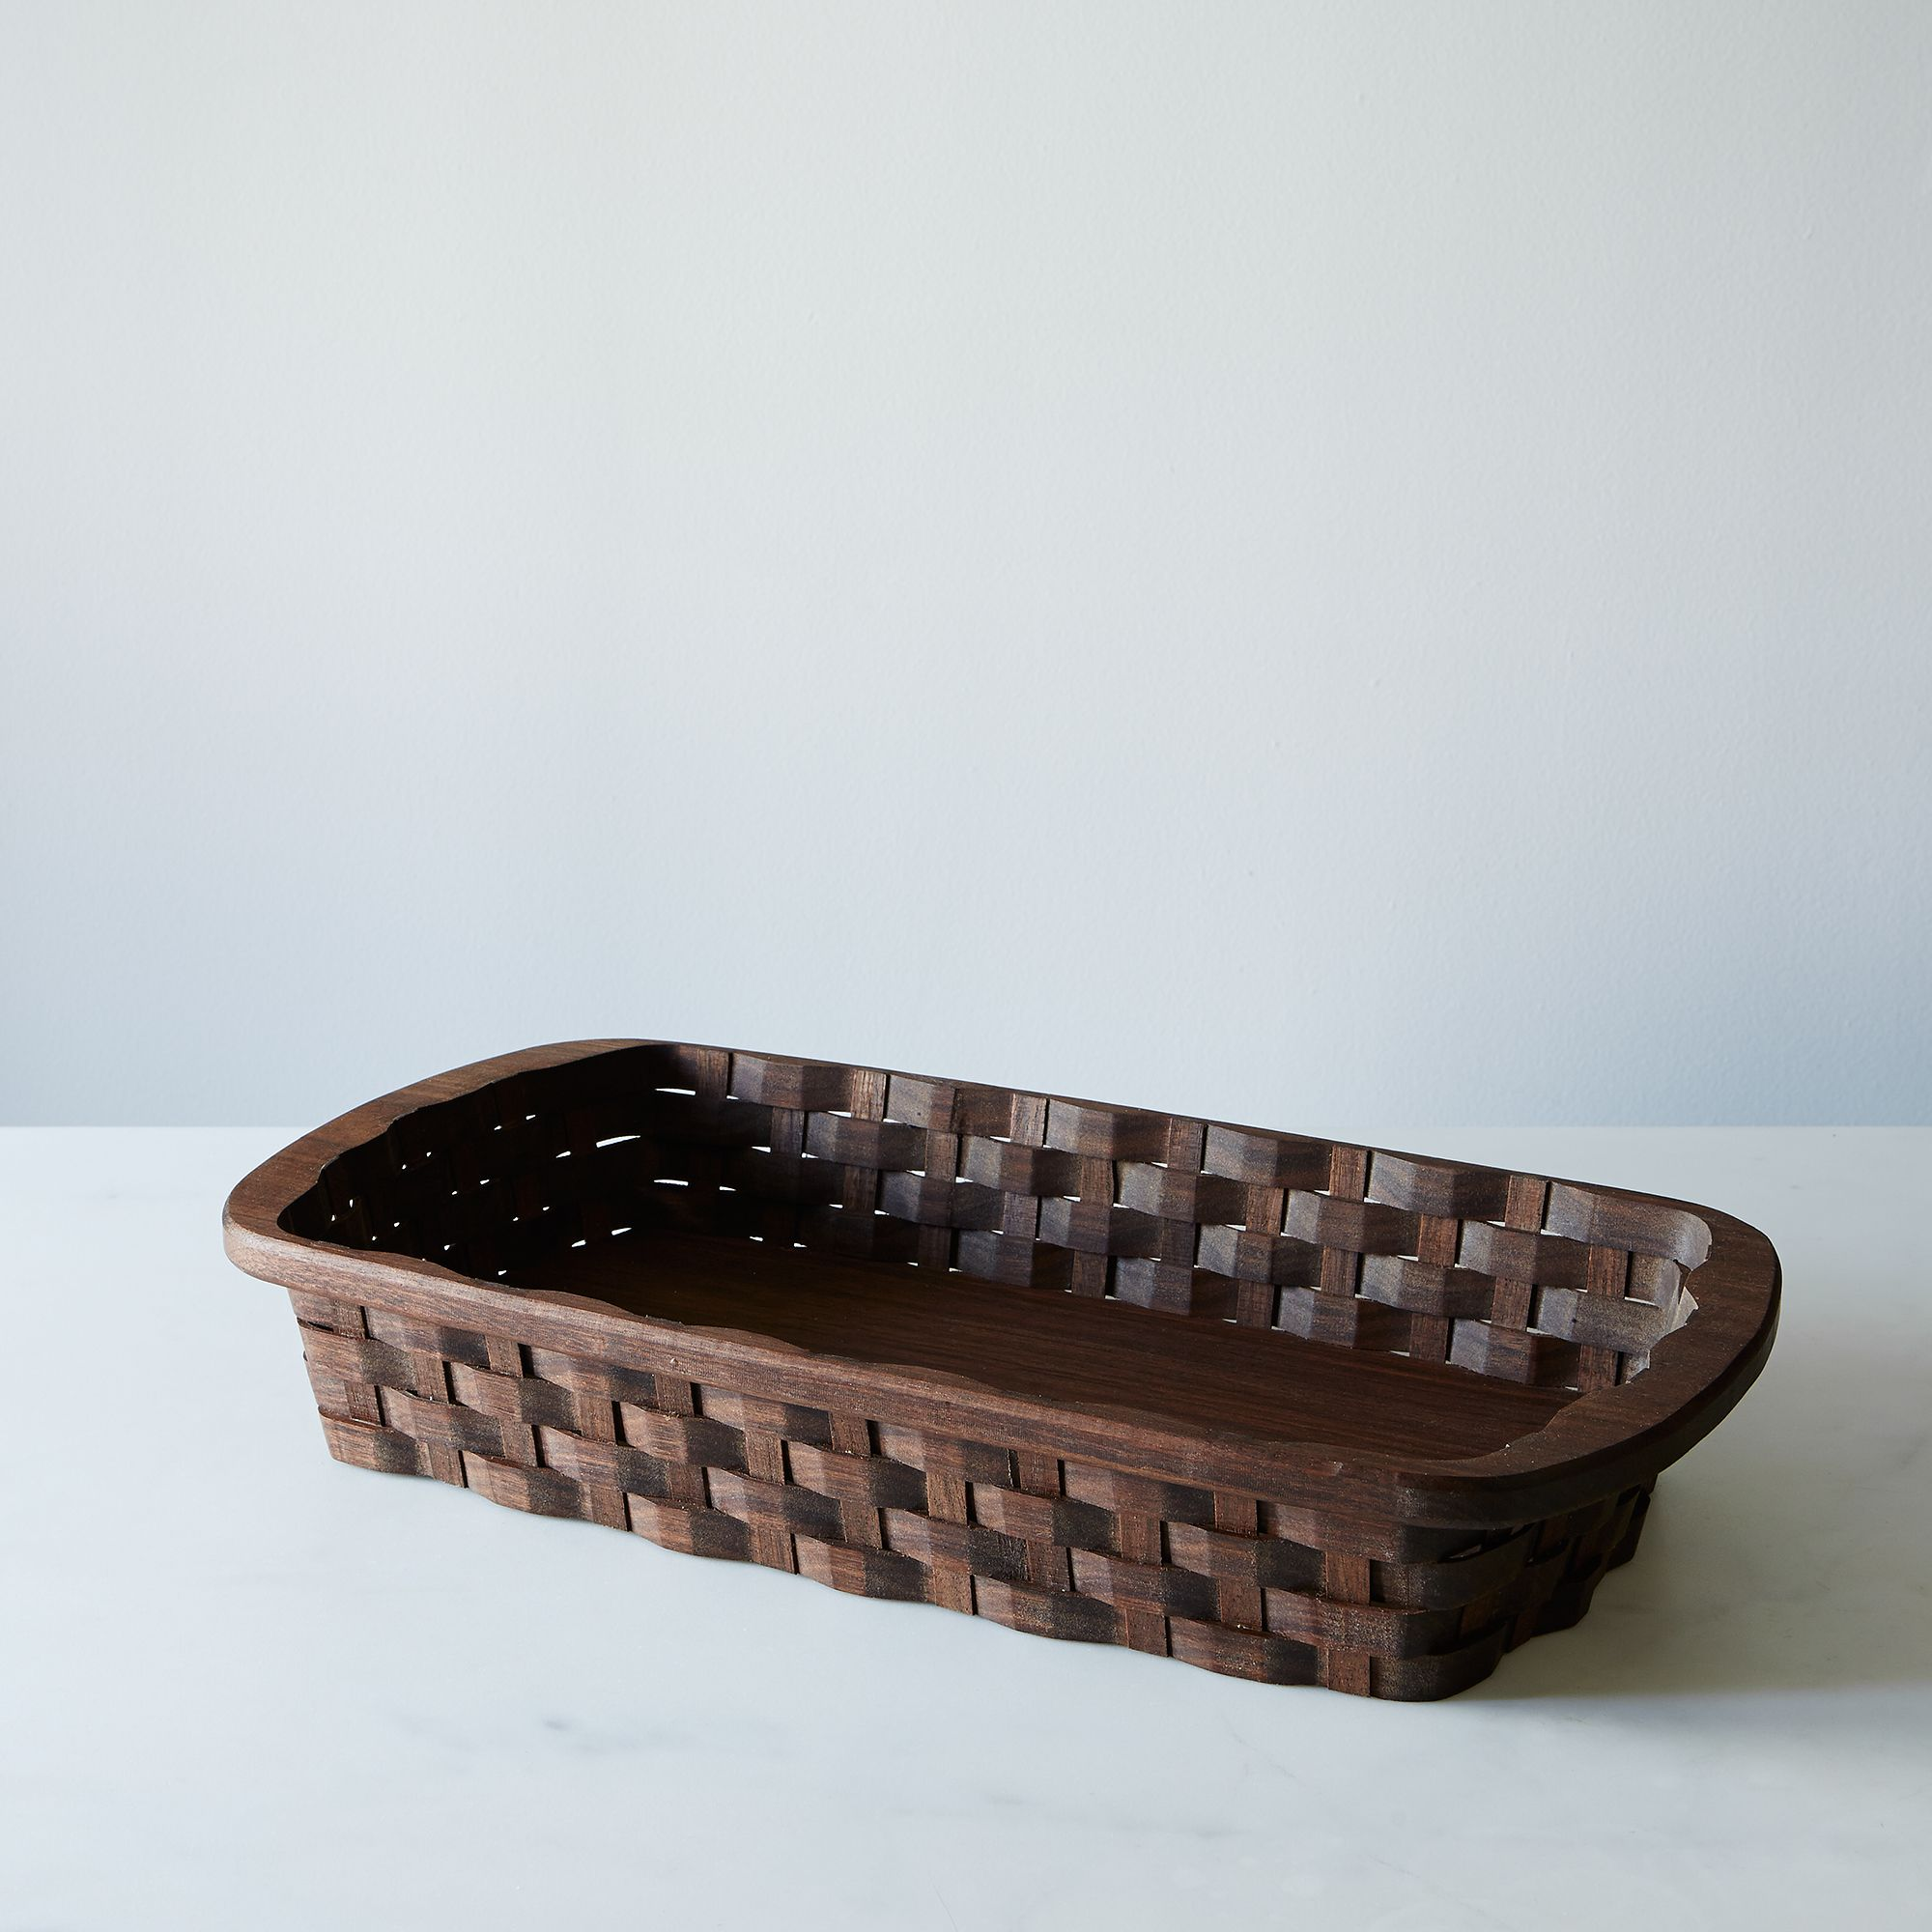 E525c28c a0f5 11e5 a190 0ef7535729df  baskets by debi wooden serving basket walnut 6227 siloc